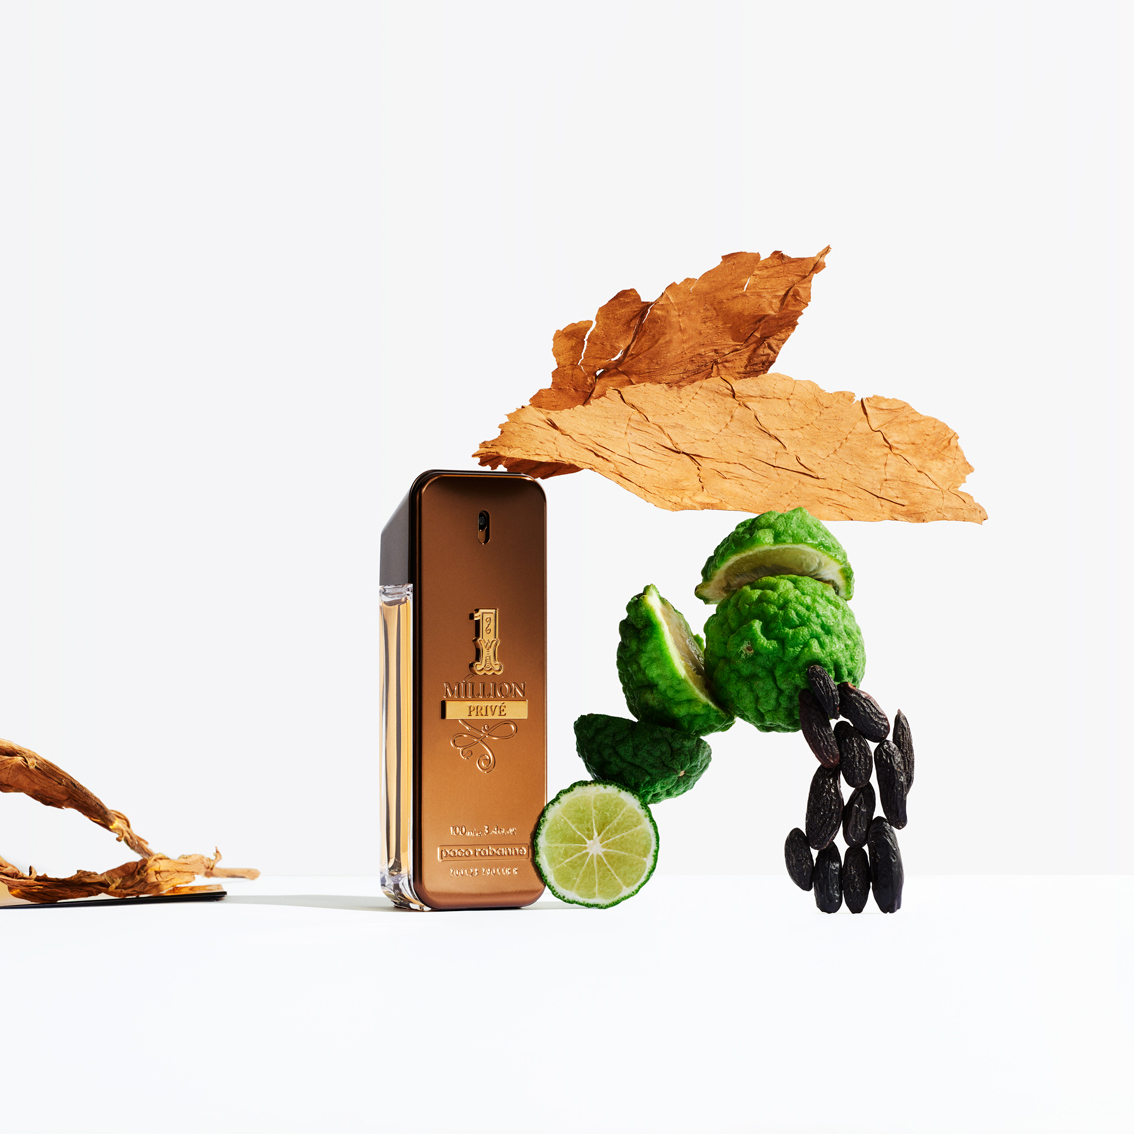 One Million Prive - Ingredients - Paco Rabanne 1